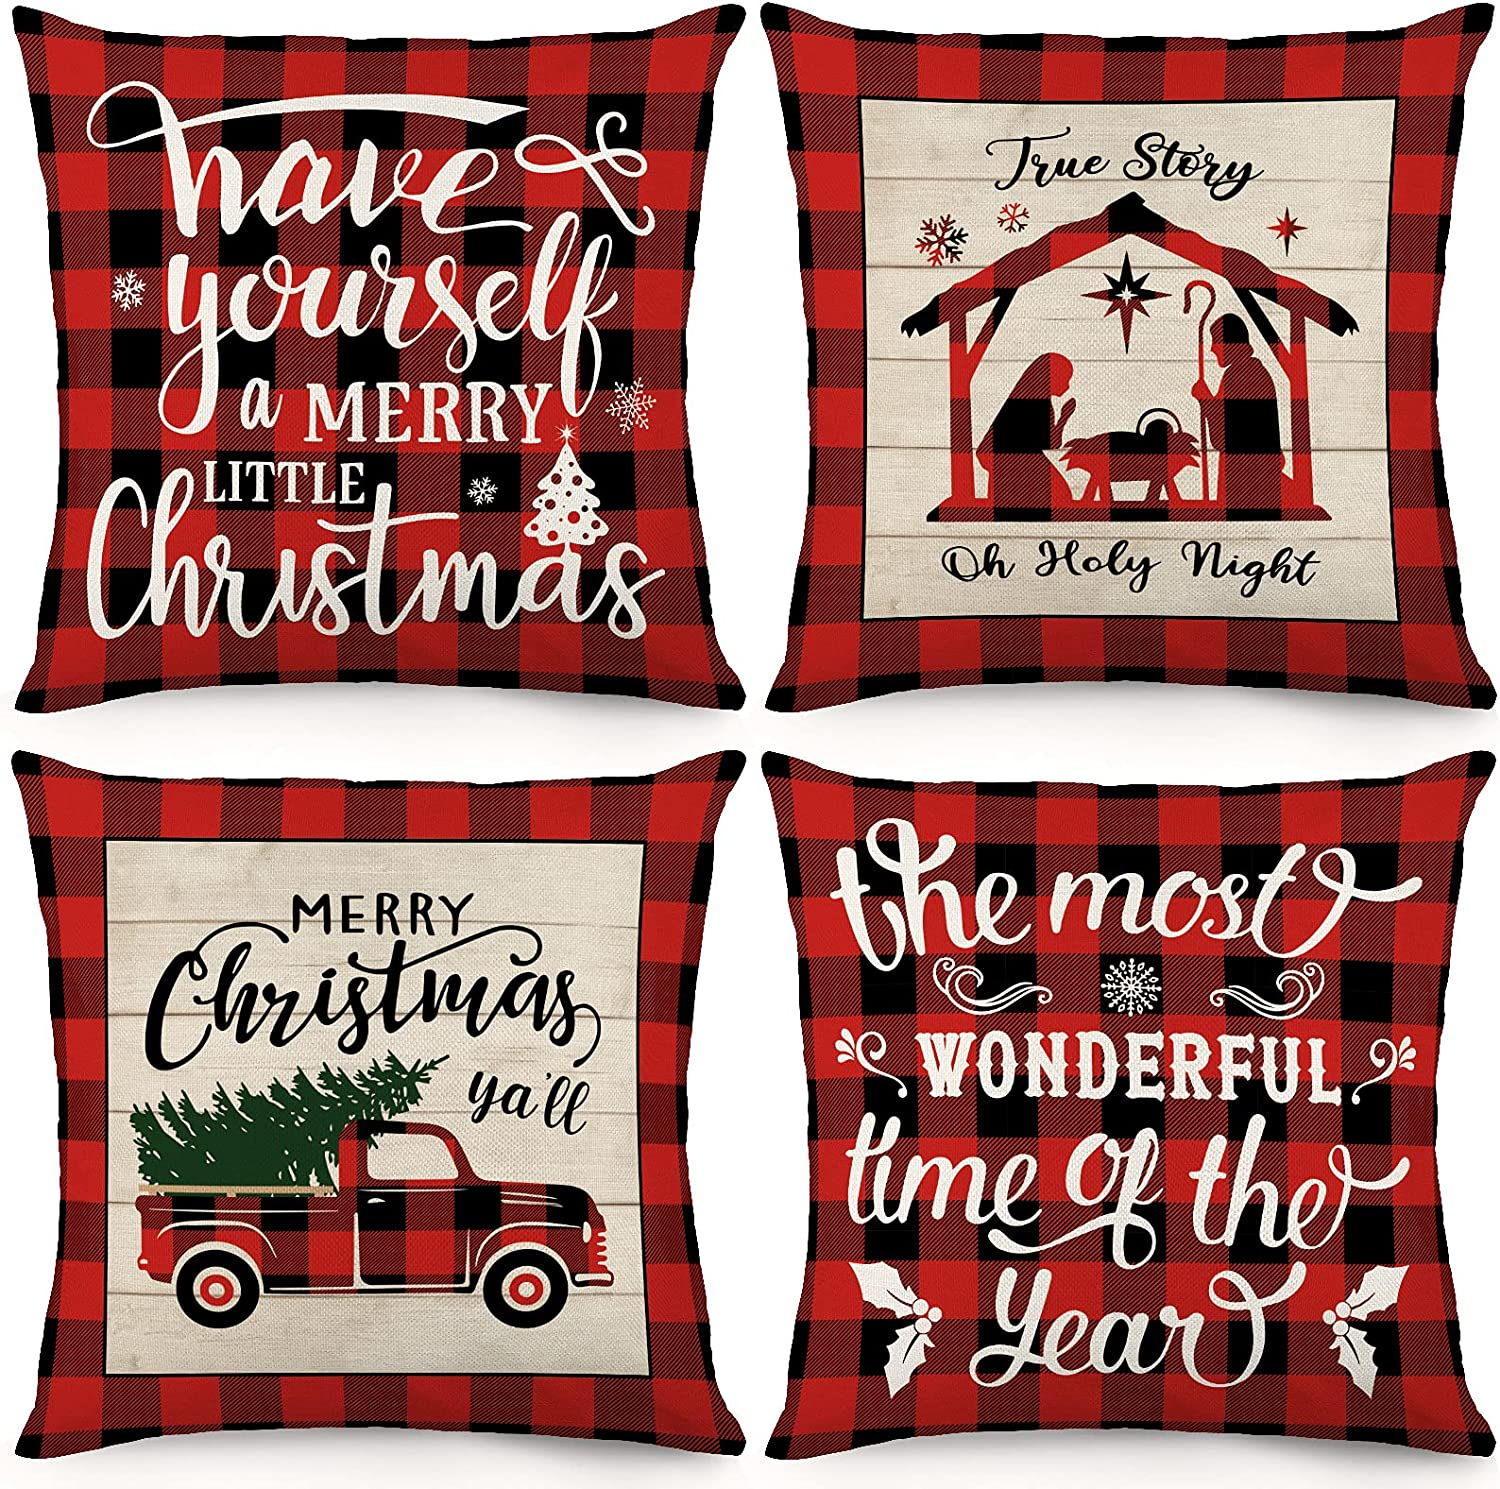 Holicolor Christmas Pillow Covers 18x18 Inch Set of 4 Christmas Decorations Farmhouse Buffalo Check Plaid Holiday Linen Cushion Case for Home Decor